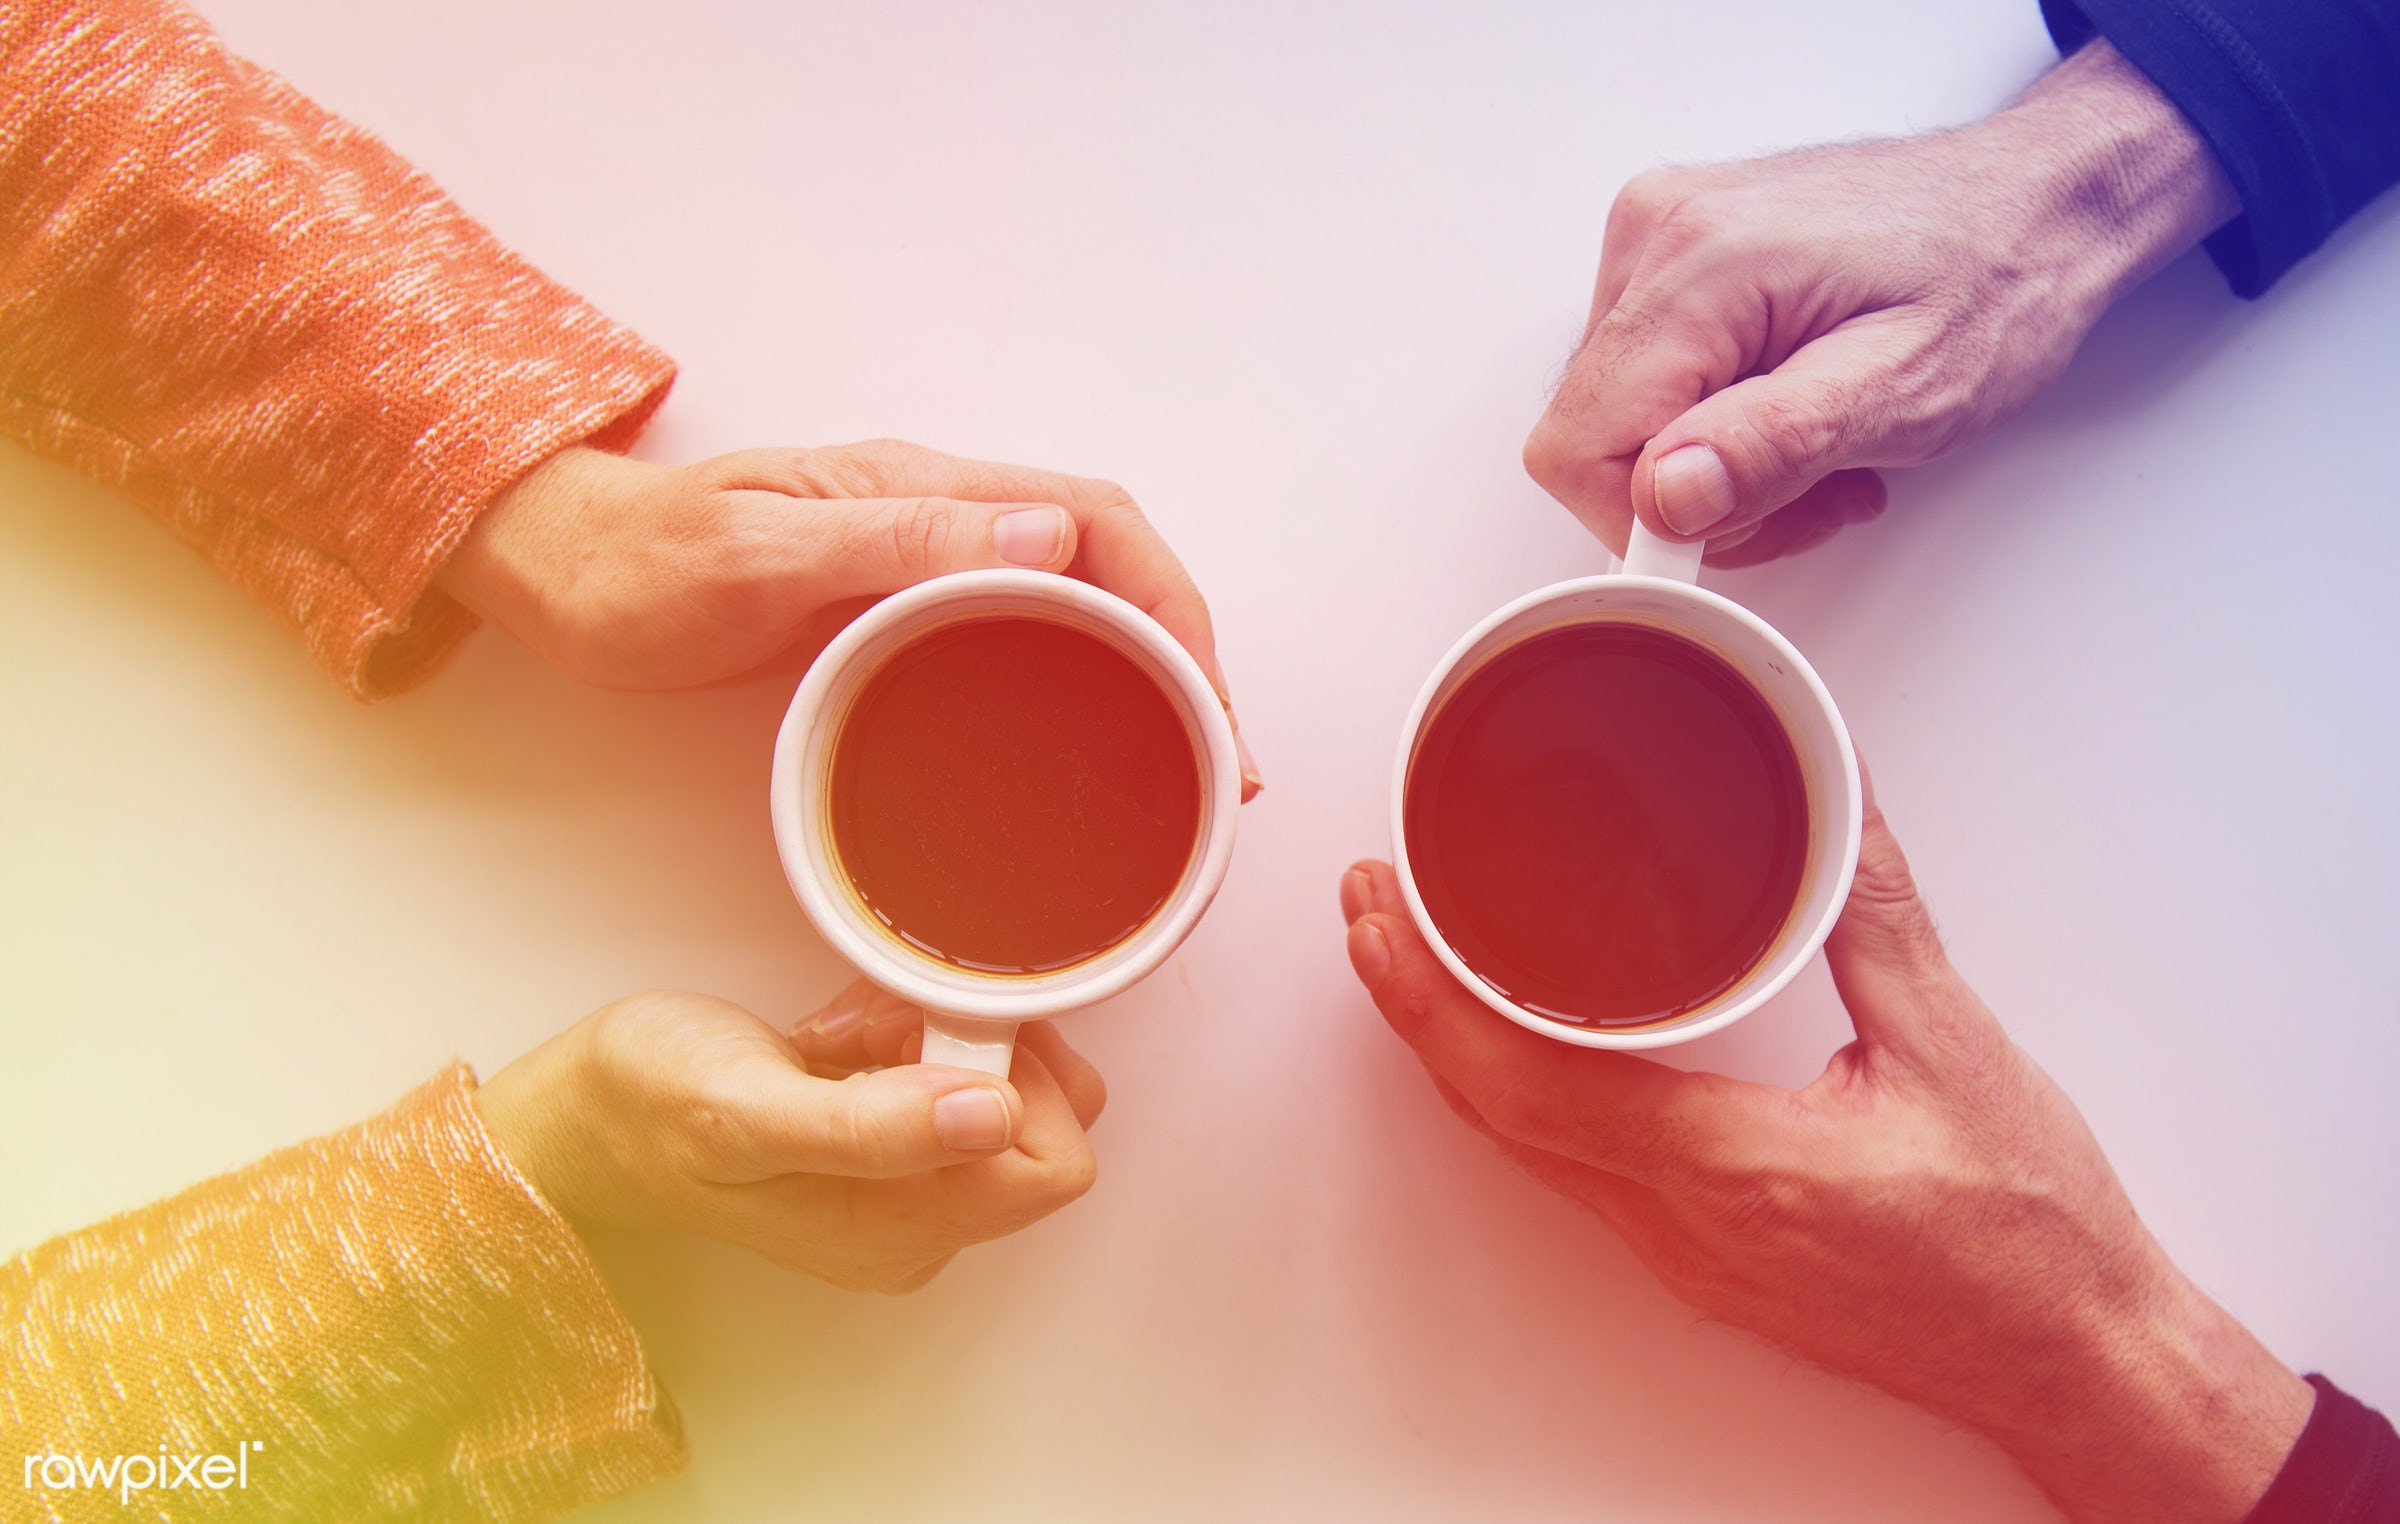 concept, person, warm, holding, relax, simple, space, tea, people, hand, mug, break, drink, aerial view, cups, coffee,...